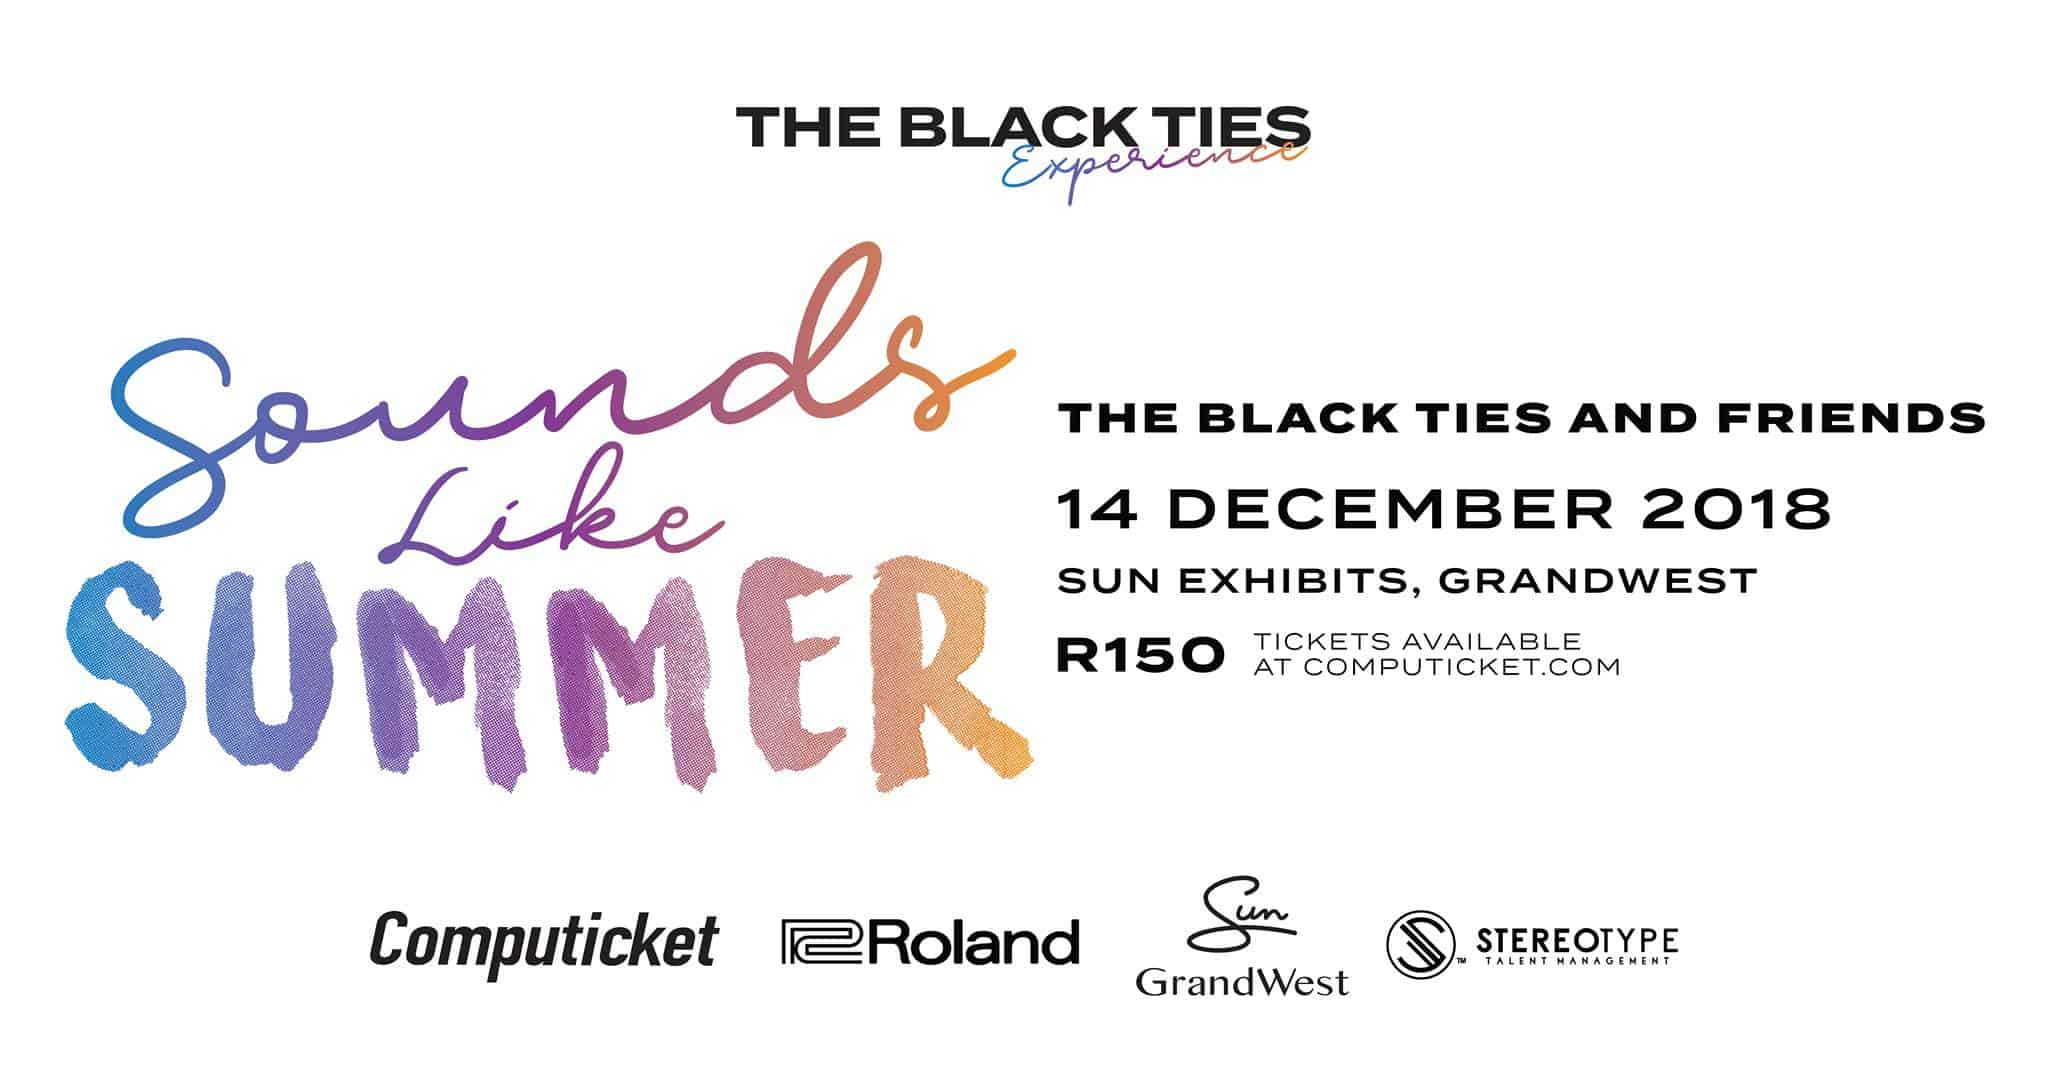 24497d841 The Black Ties, One of South Africa's premier cover bands, has started a  series of themed live performances entitled, The Black Ties Experience  which you ...